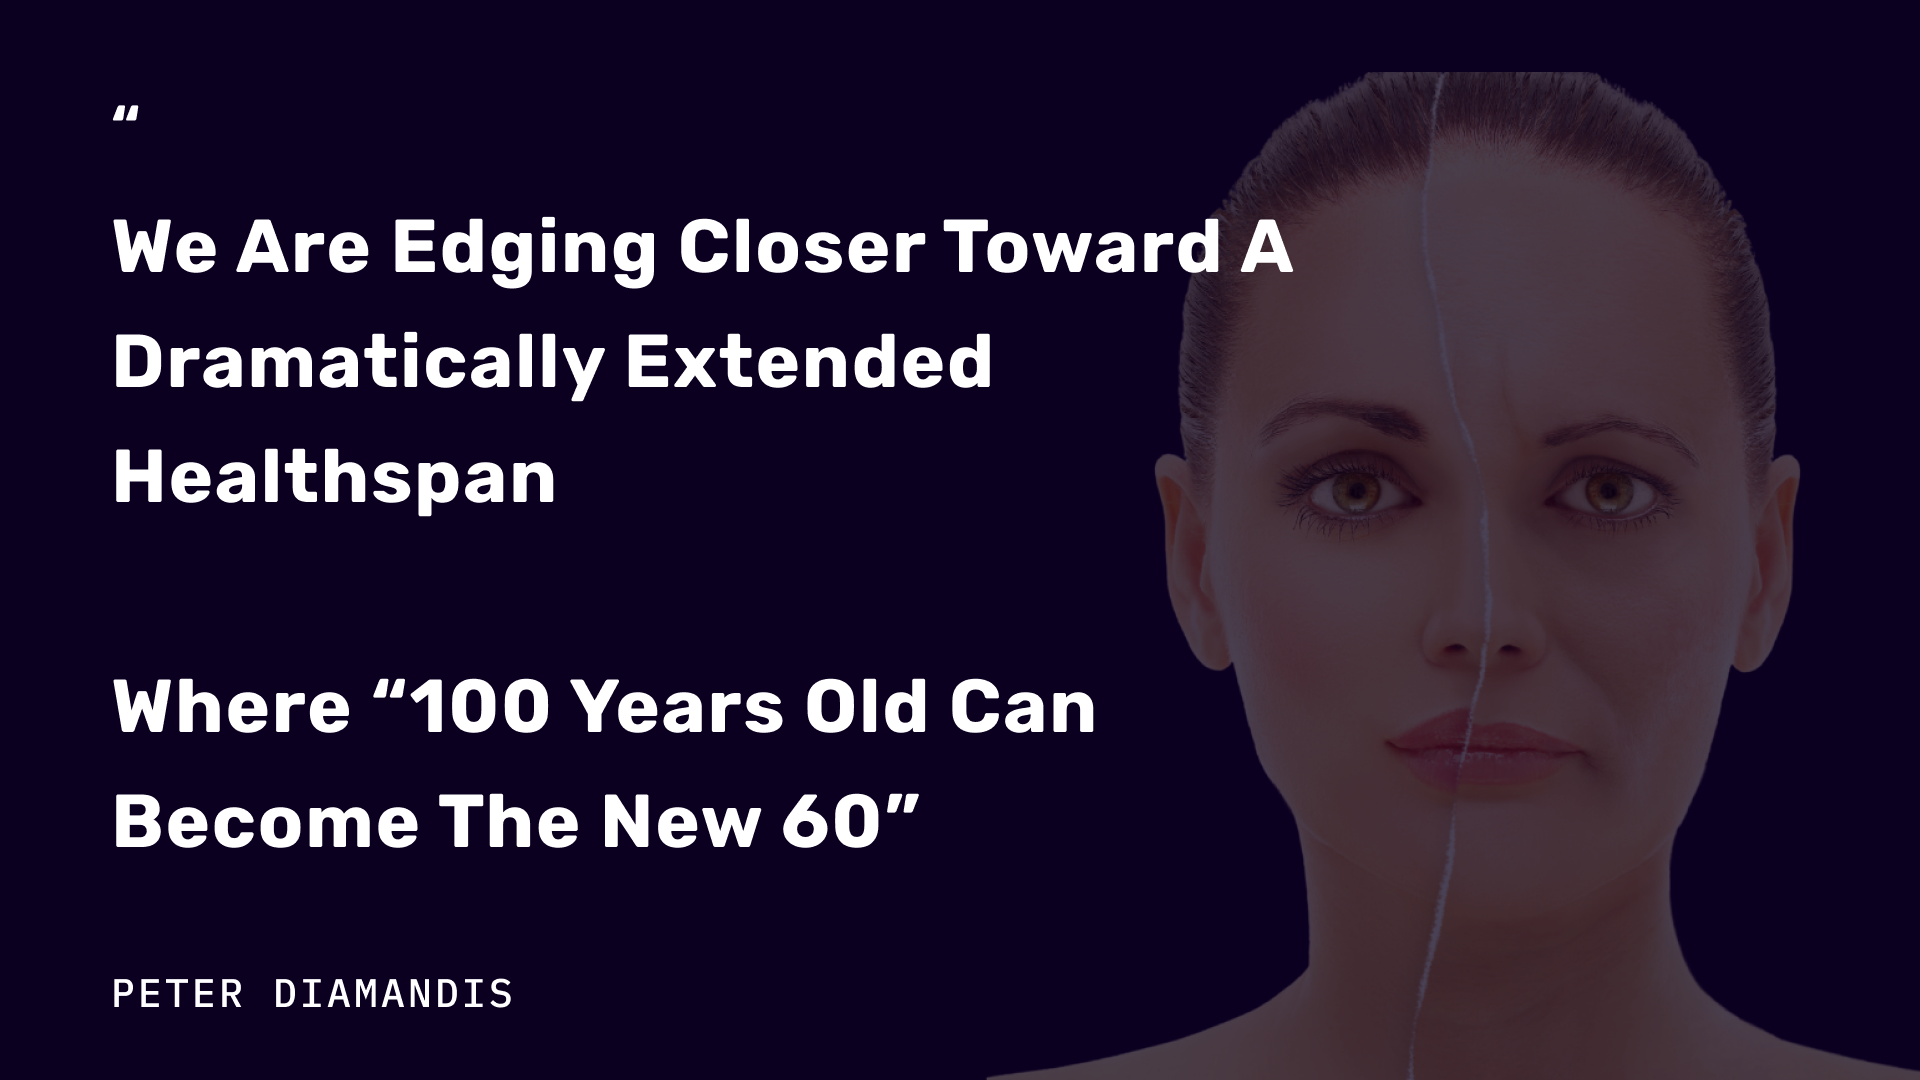 Peter Diamandis quote about increasing human healthspan and a picture of a woman's face